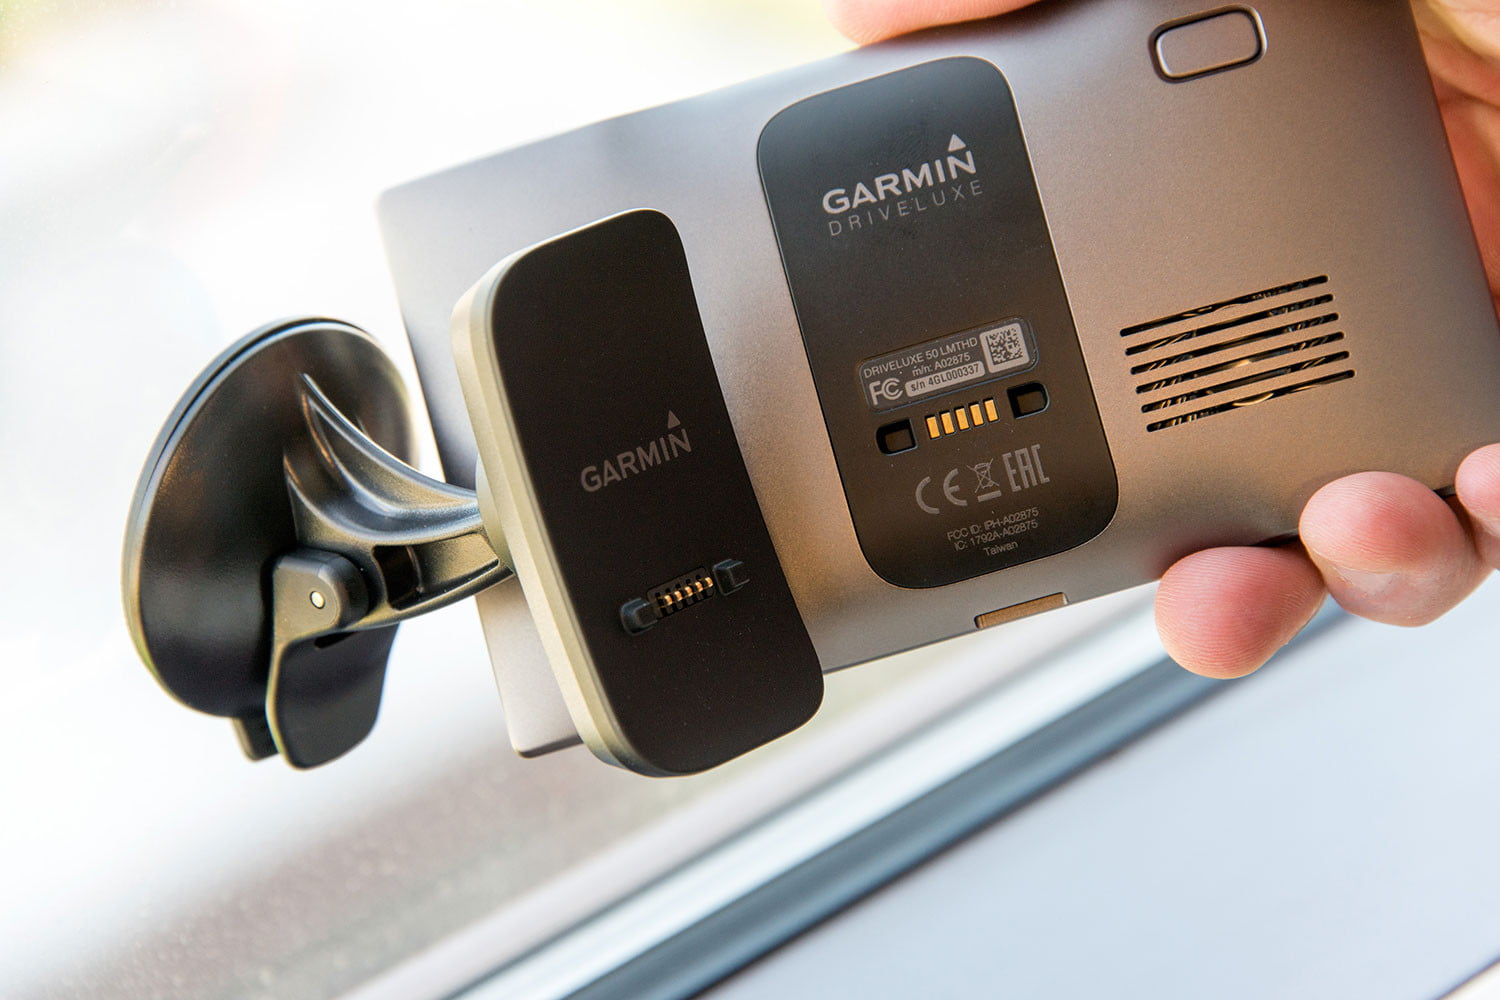 Garmin DriveLuxe 50LMTHD Review | Digital Trends